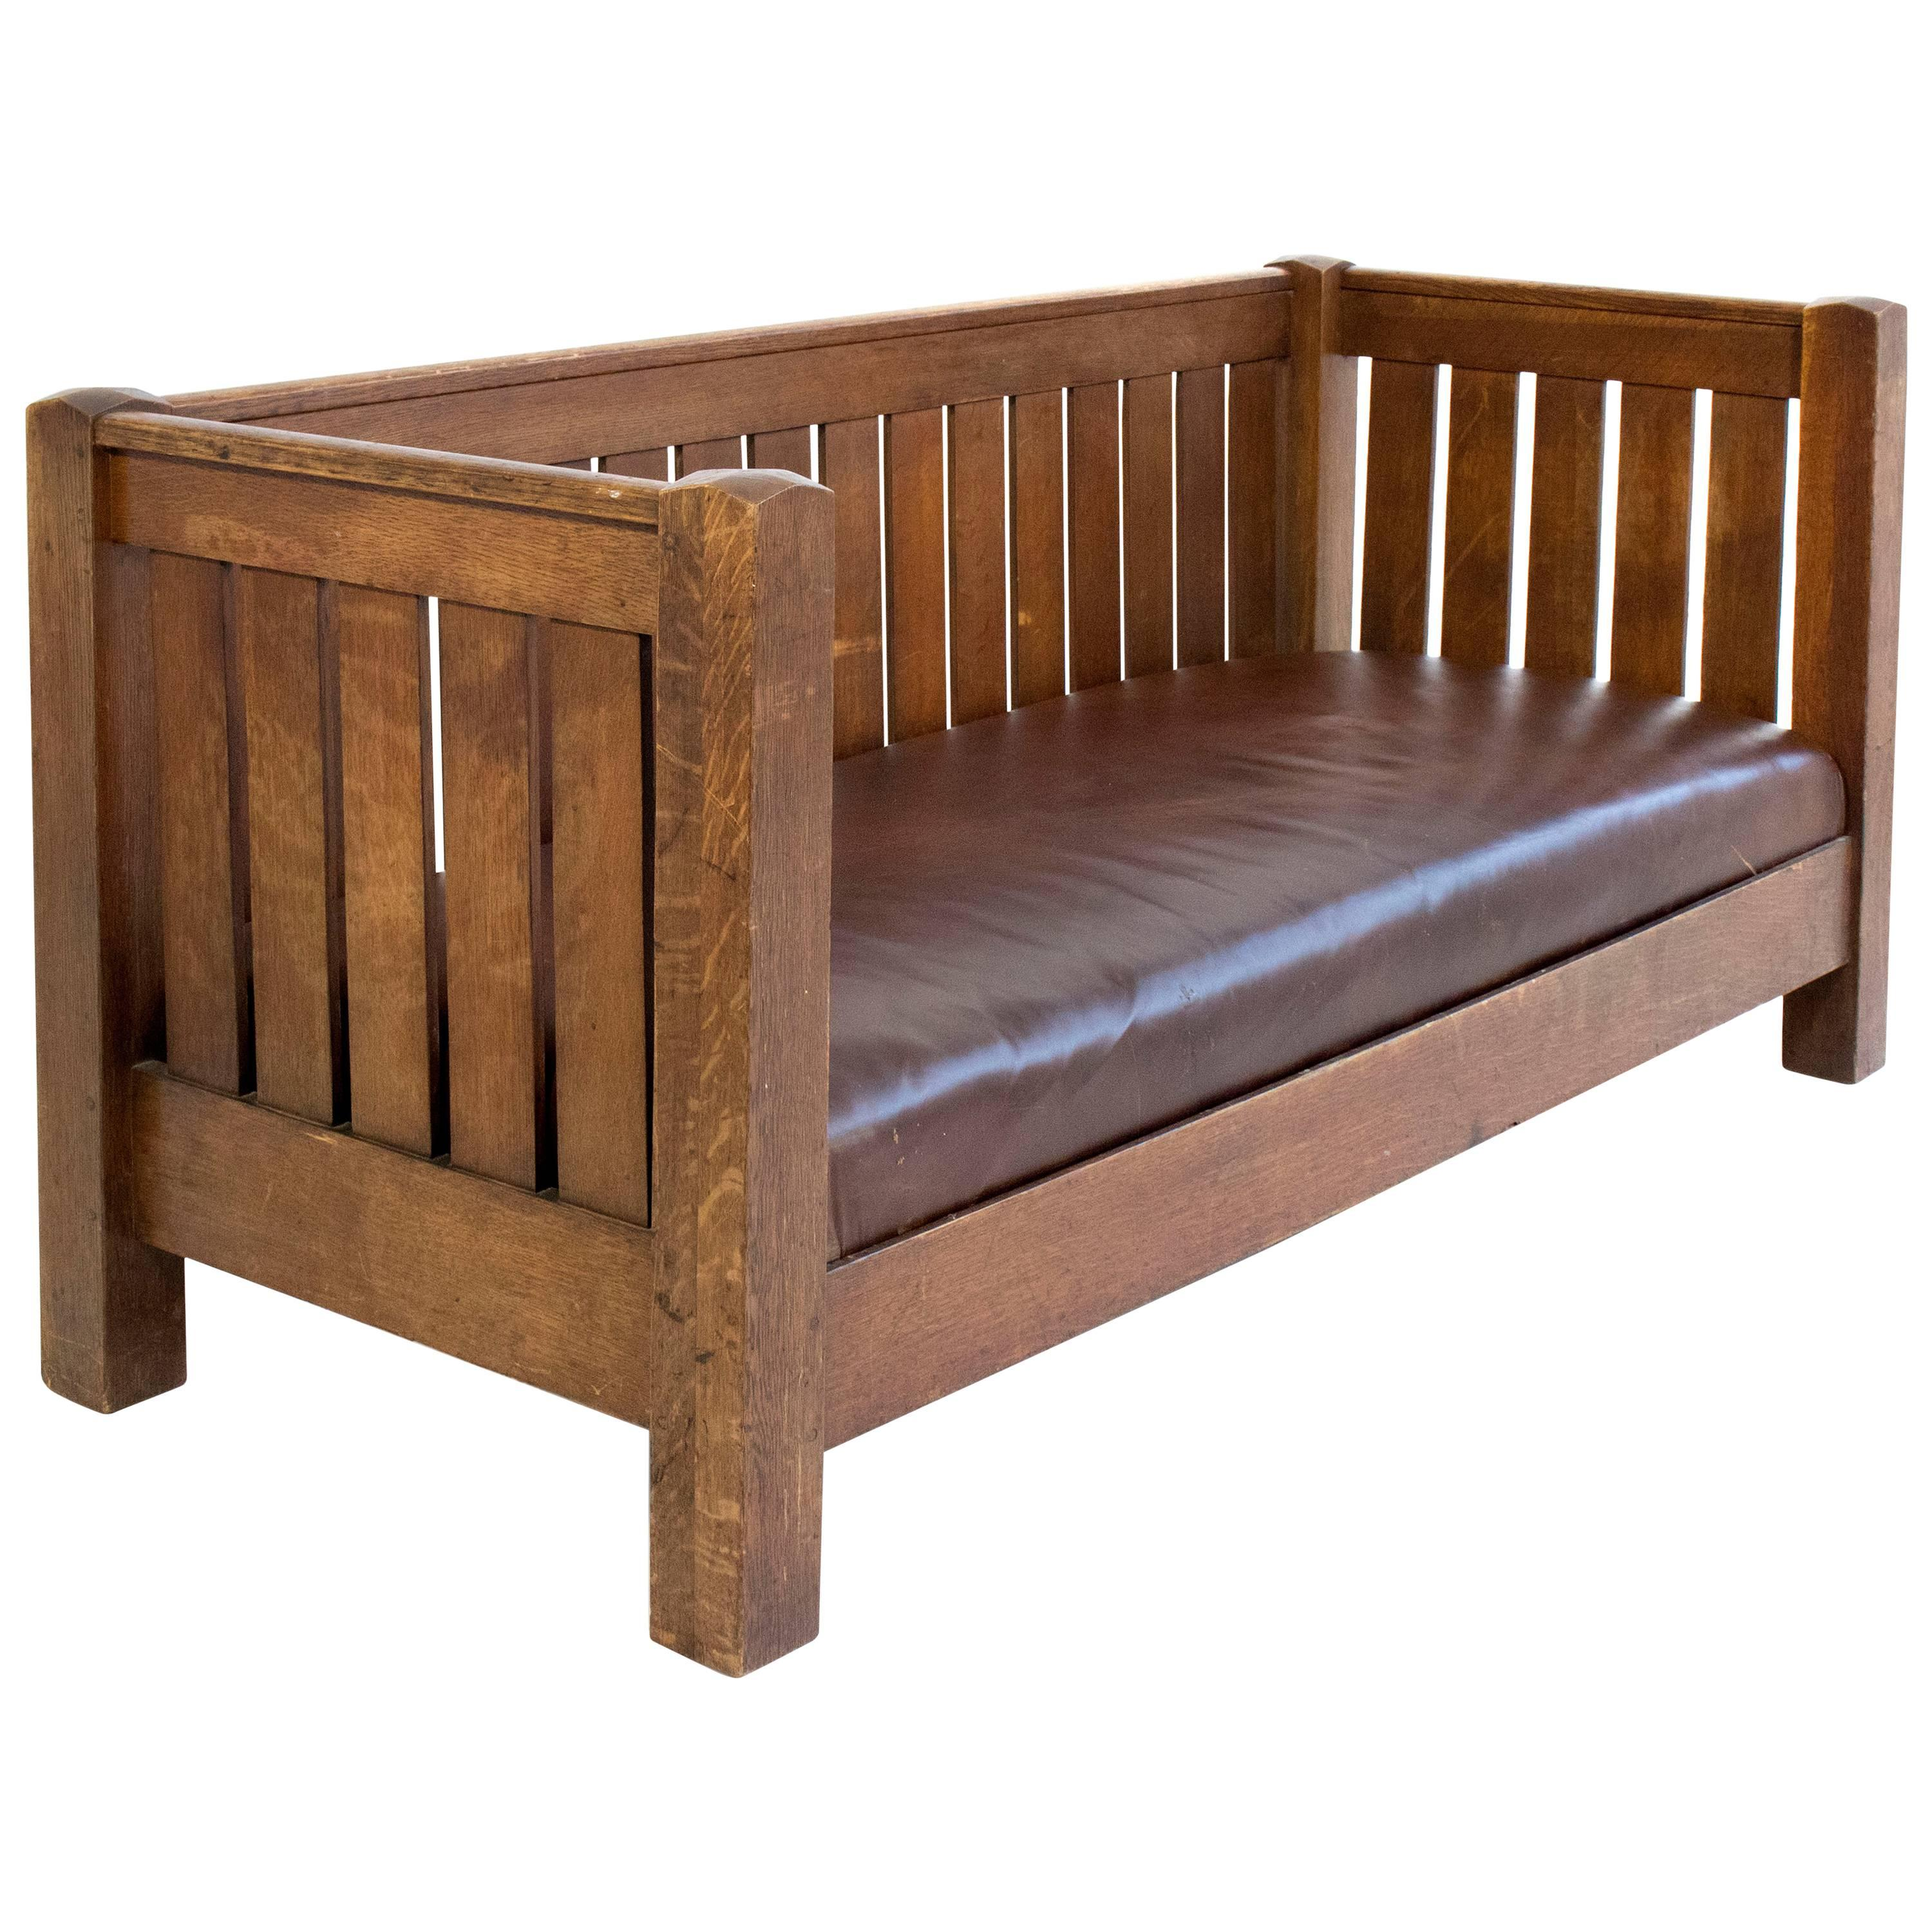 Large And Rare Mission Oak Sofa Bench By Gustav Stickley, Circa 1910, USA  For